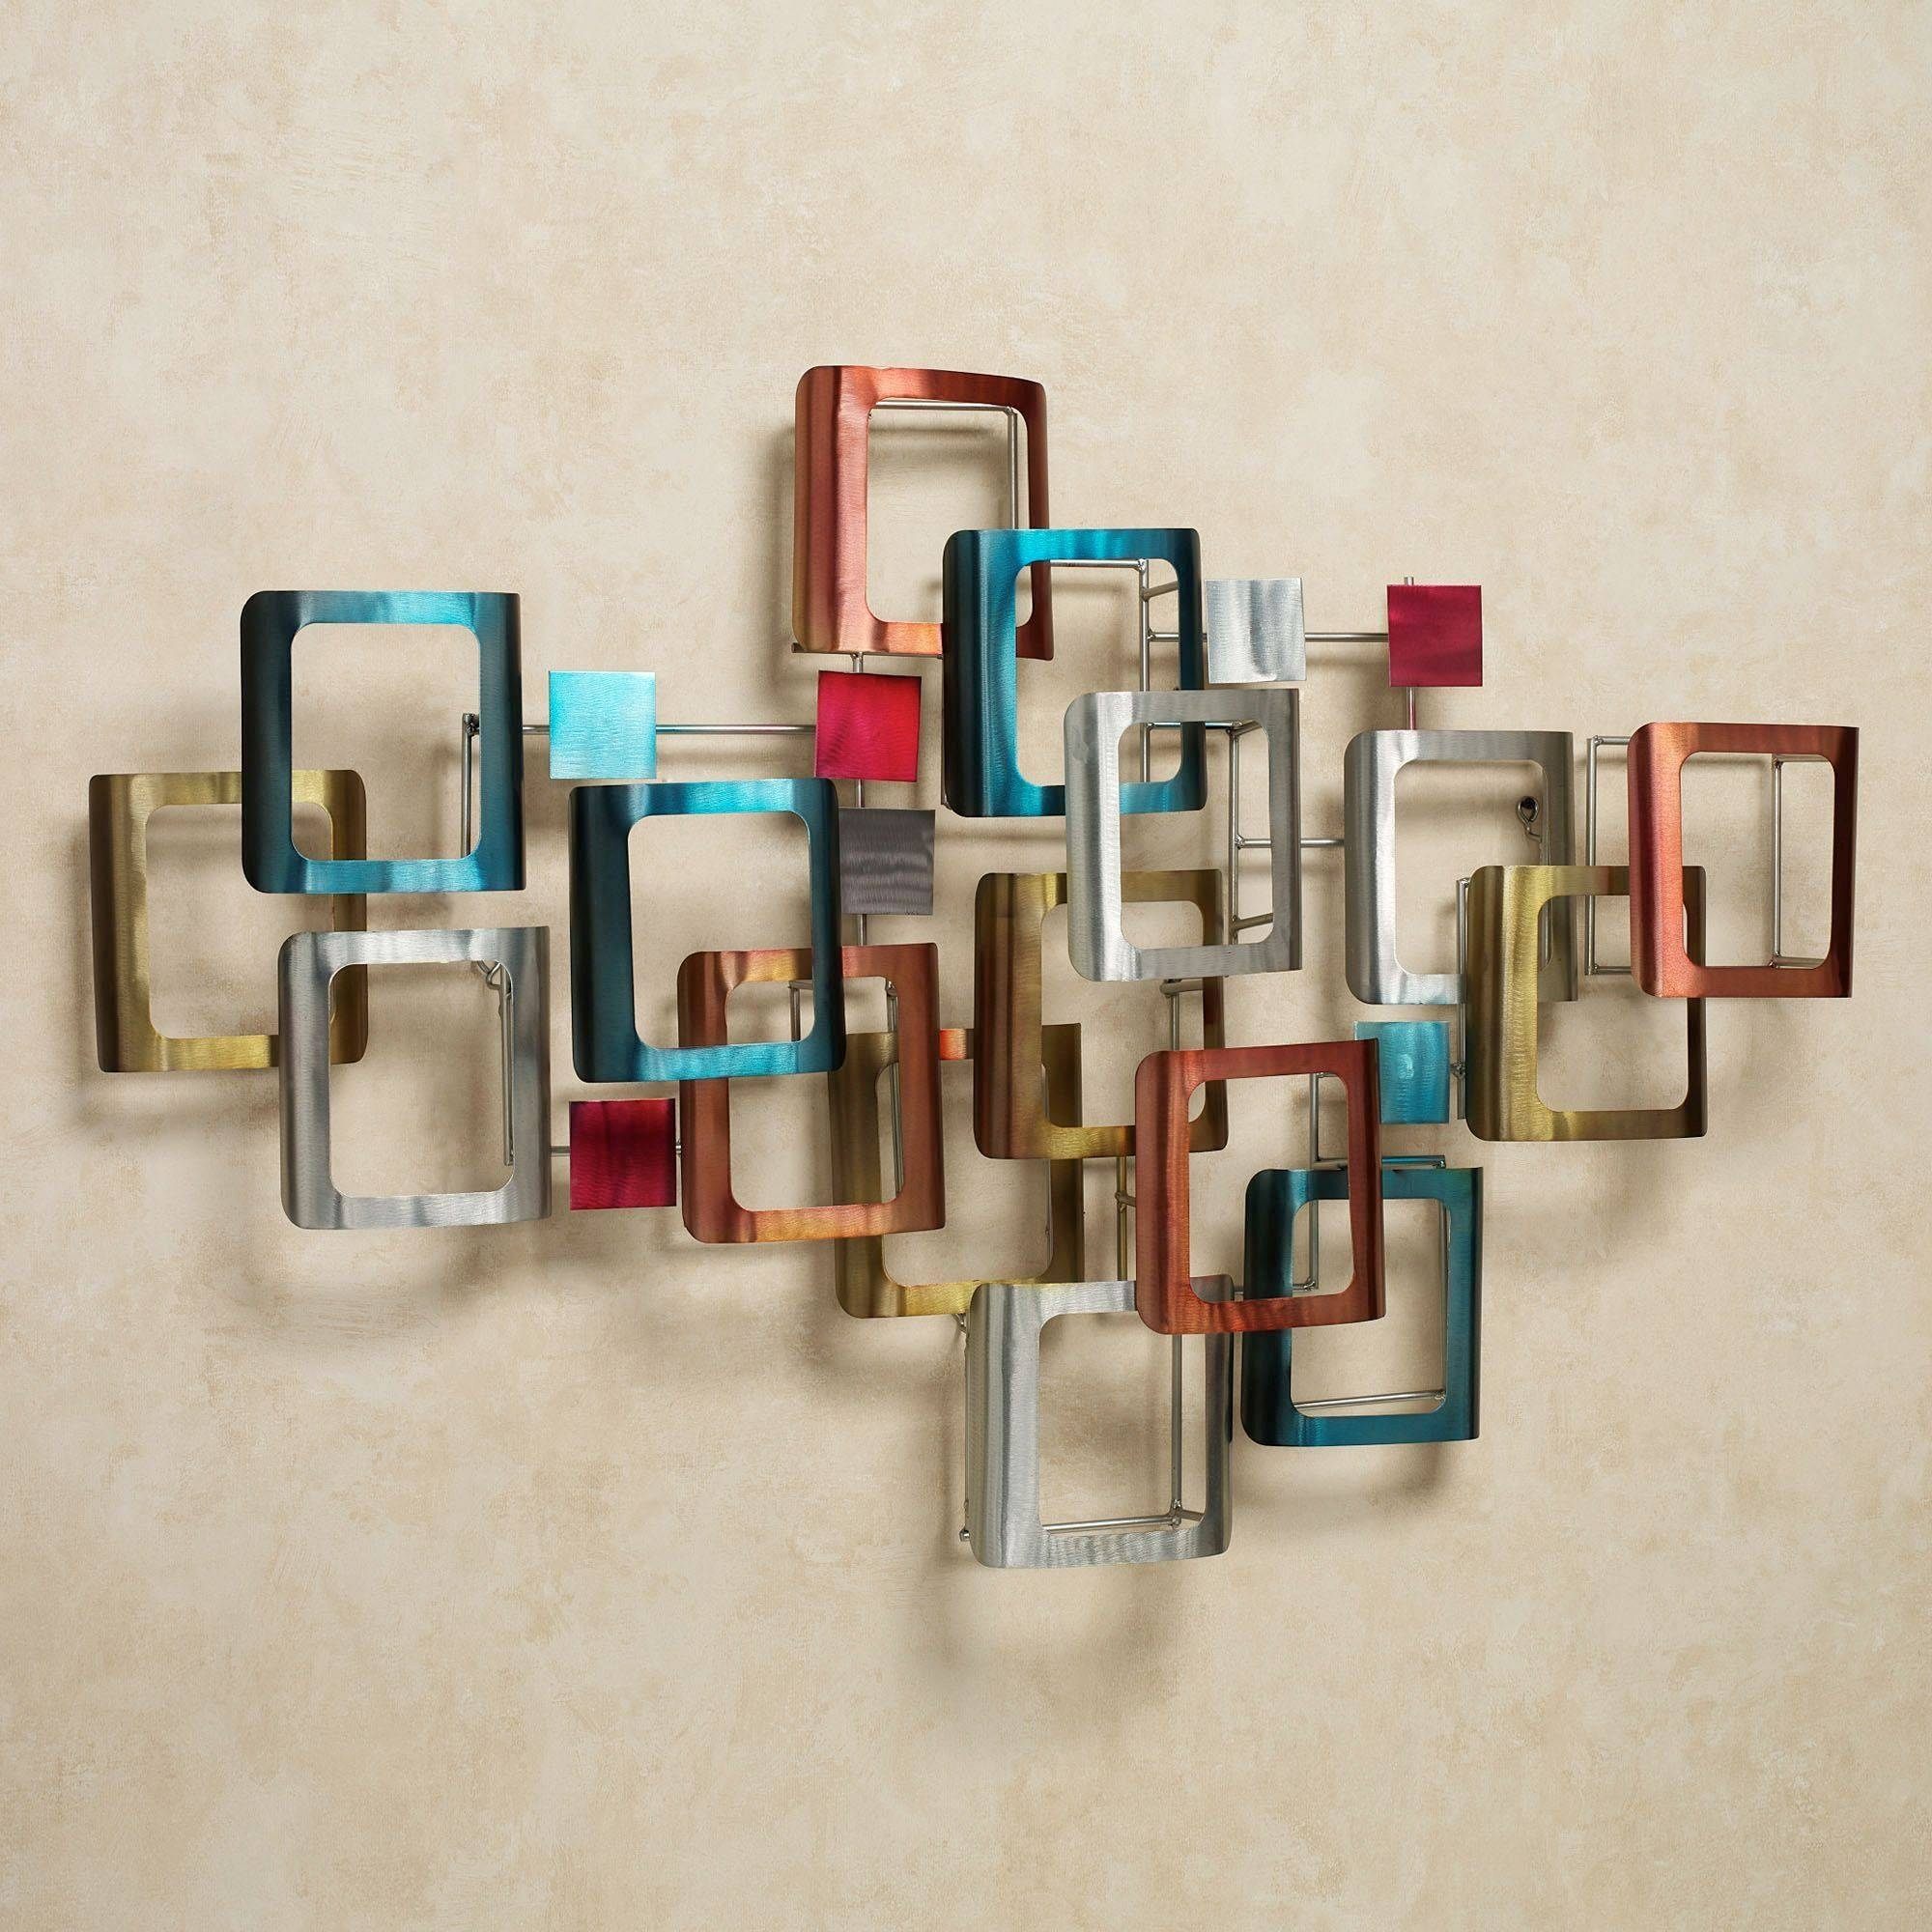 Contemporary Metal Wall Art Sculptures | Touch Of Class Pertaining To Most Up To Date Jeweled Metal Wall Art (View 3 of 20)